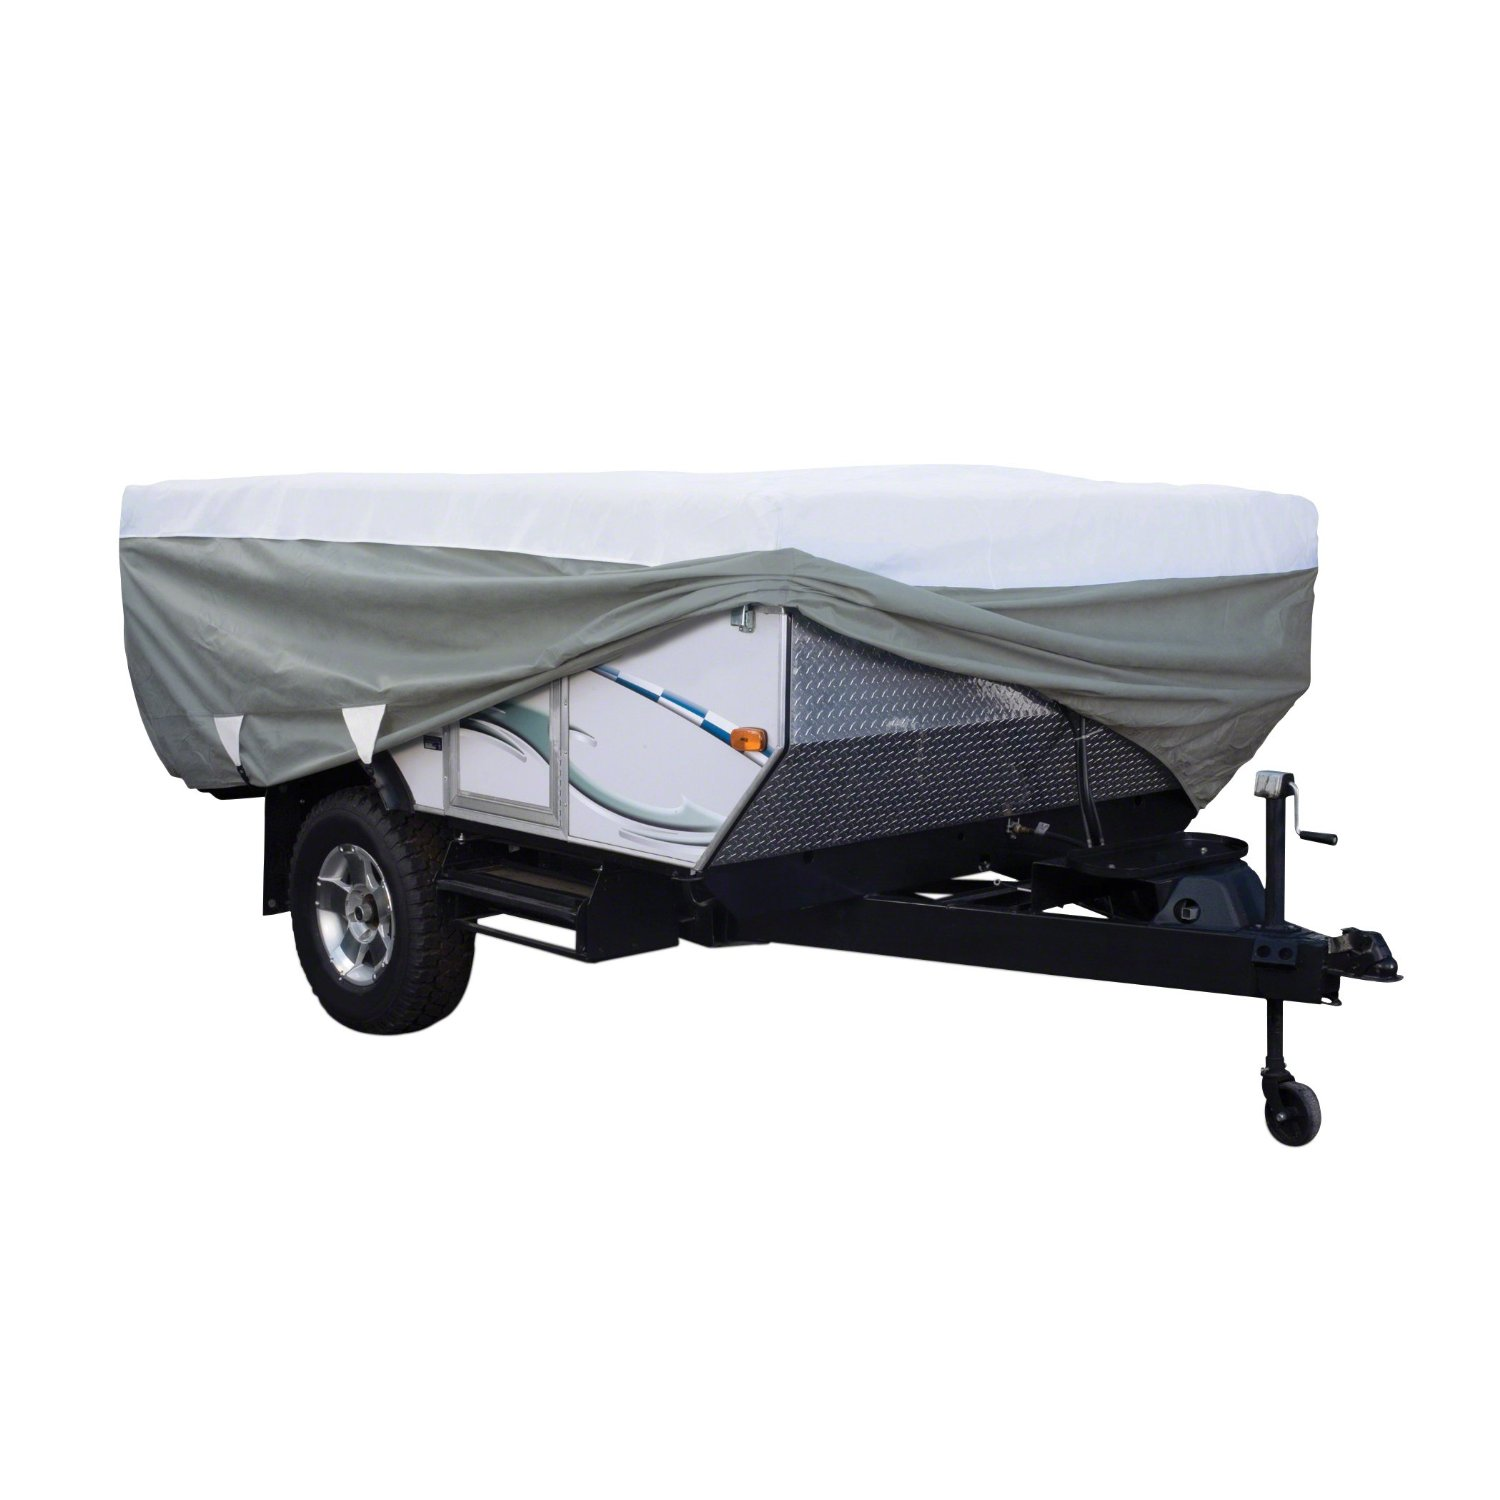 80-209-303101-00 Classic Accessories RV Cover For Folding Camper